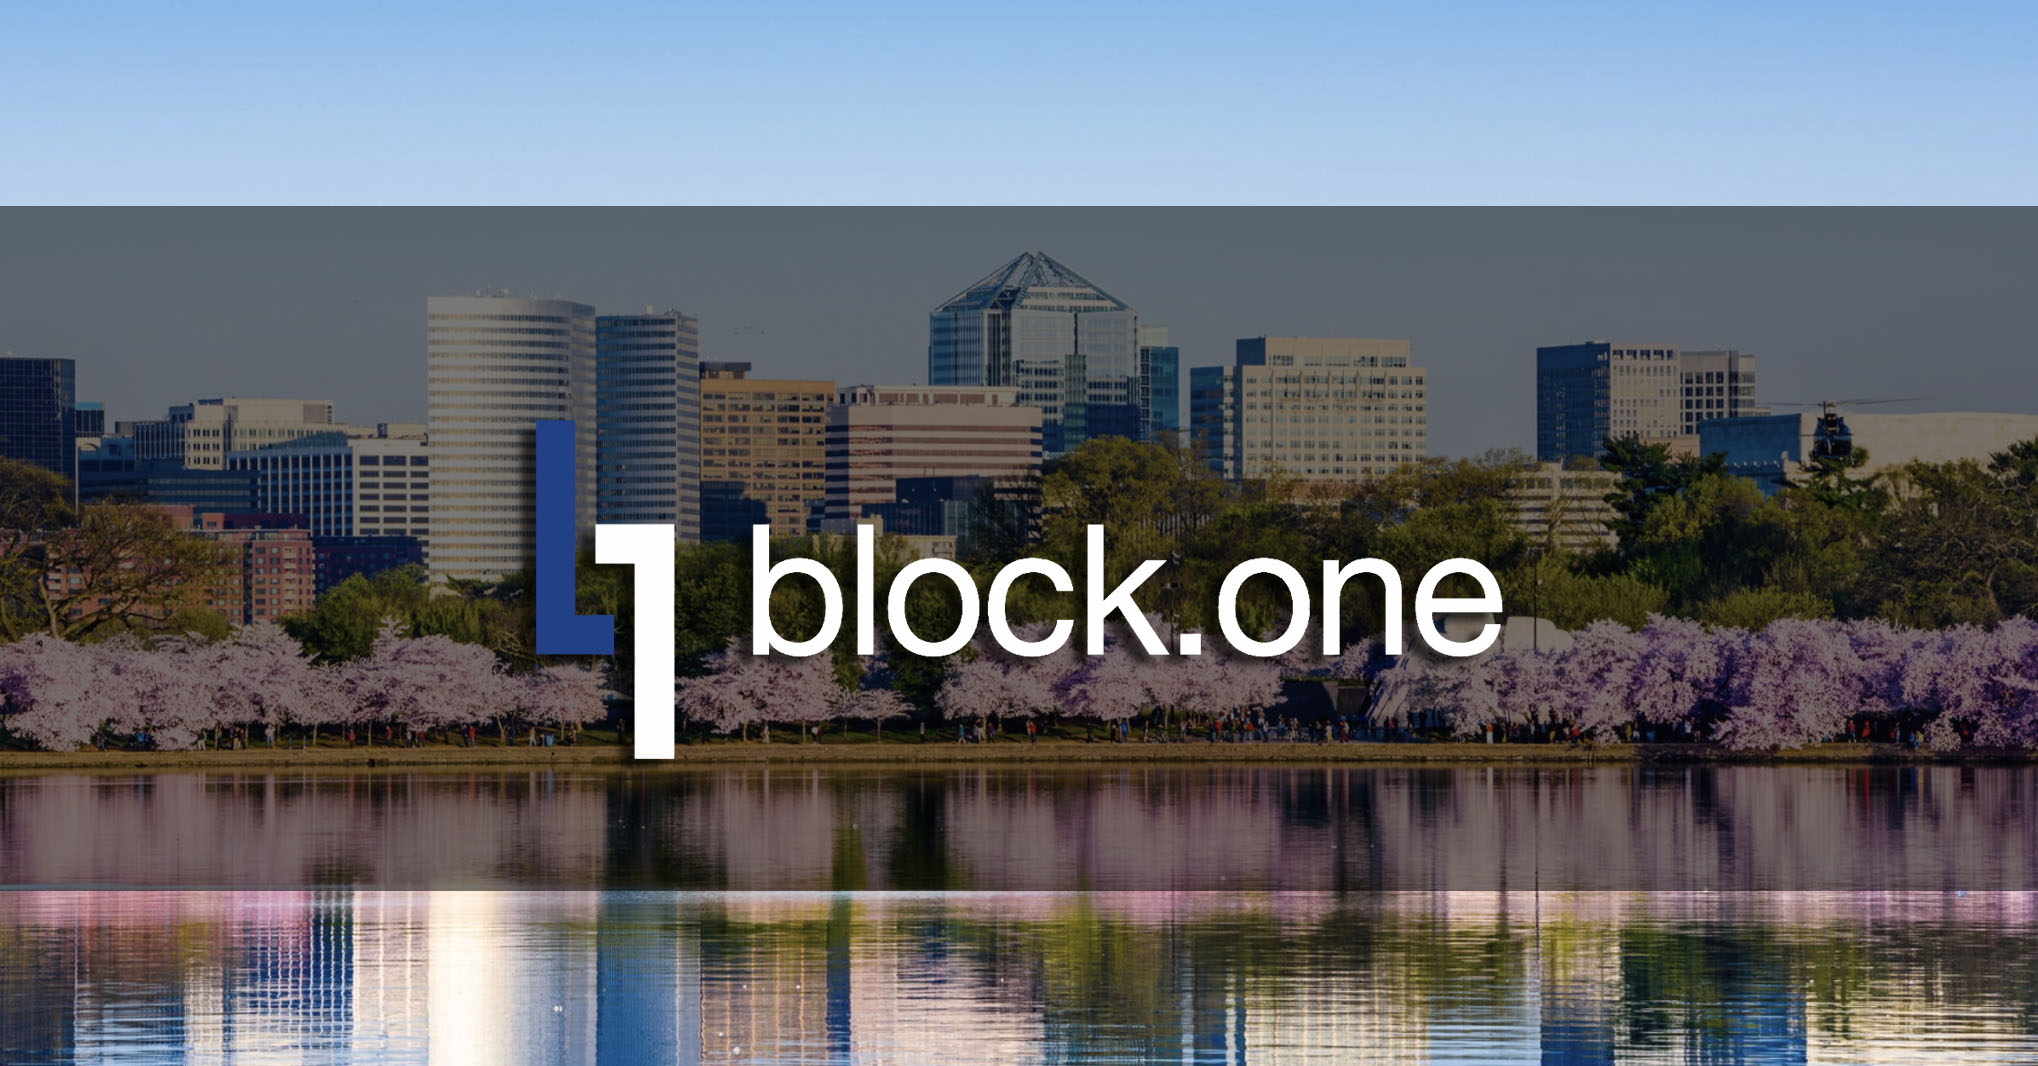 block-one-invest-10-million-new-us-headquarter